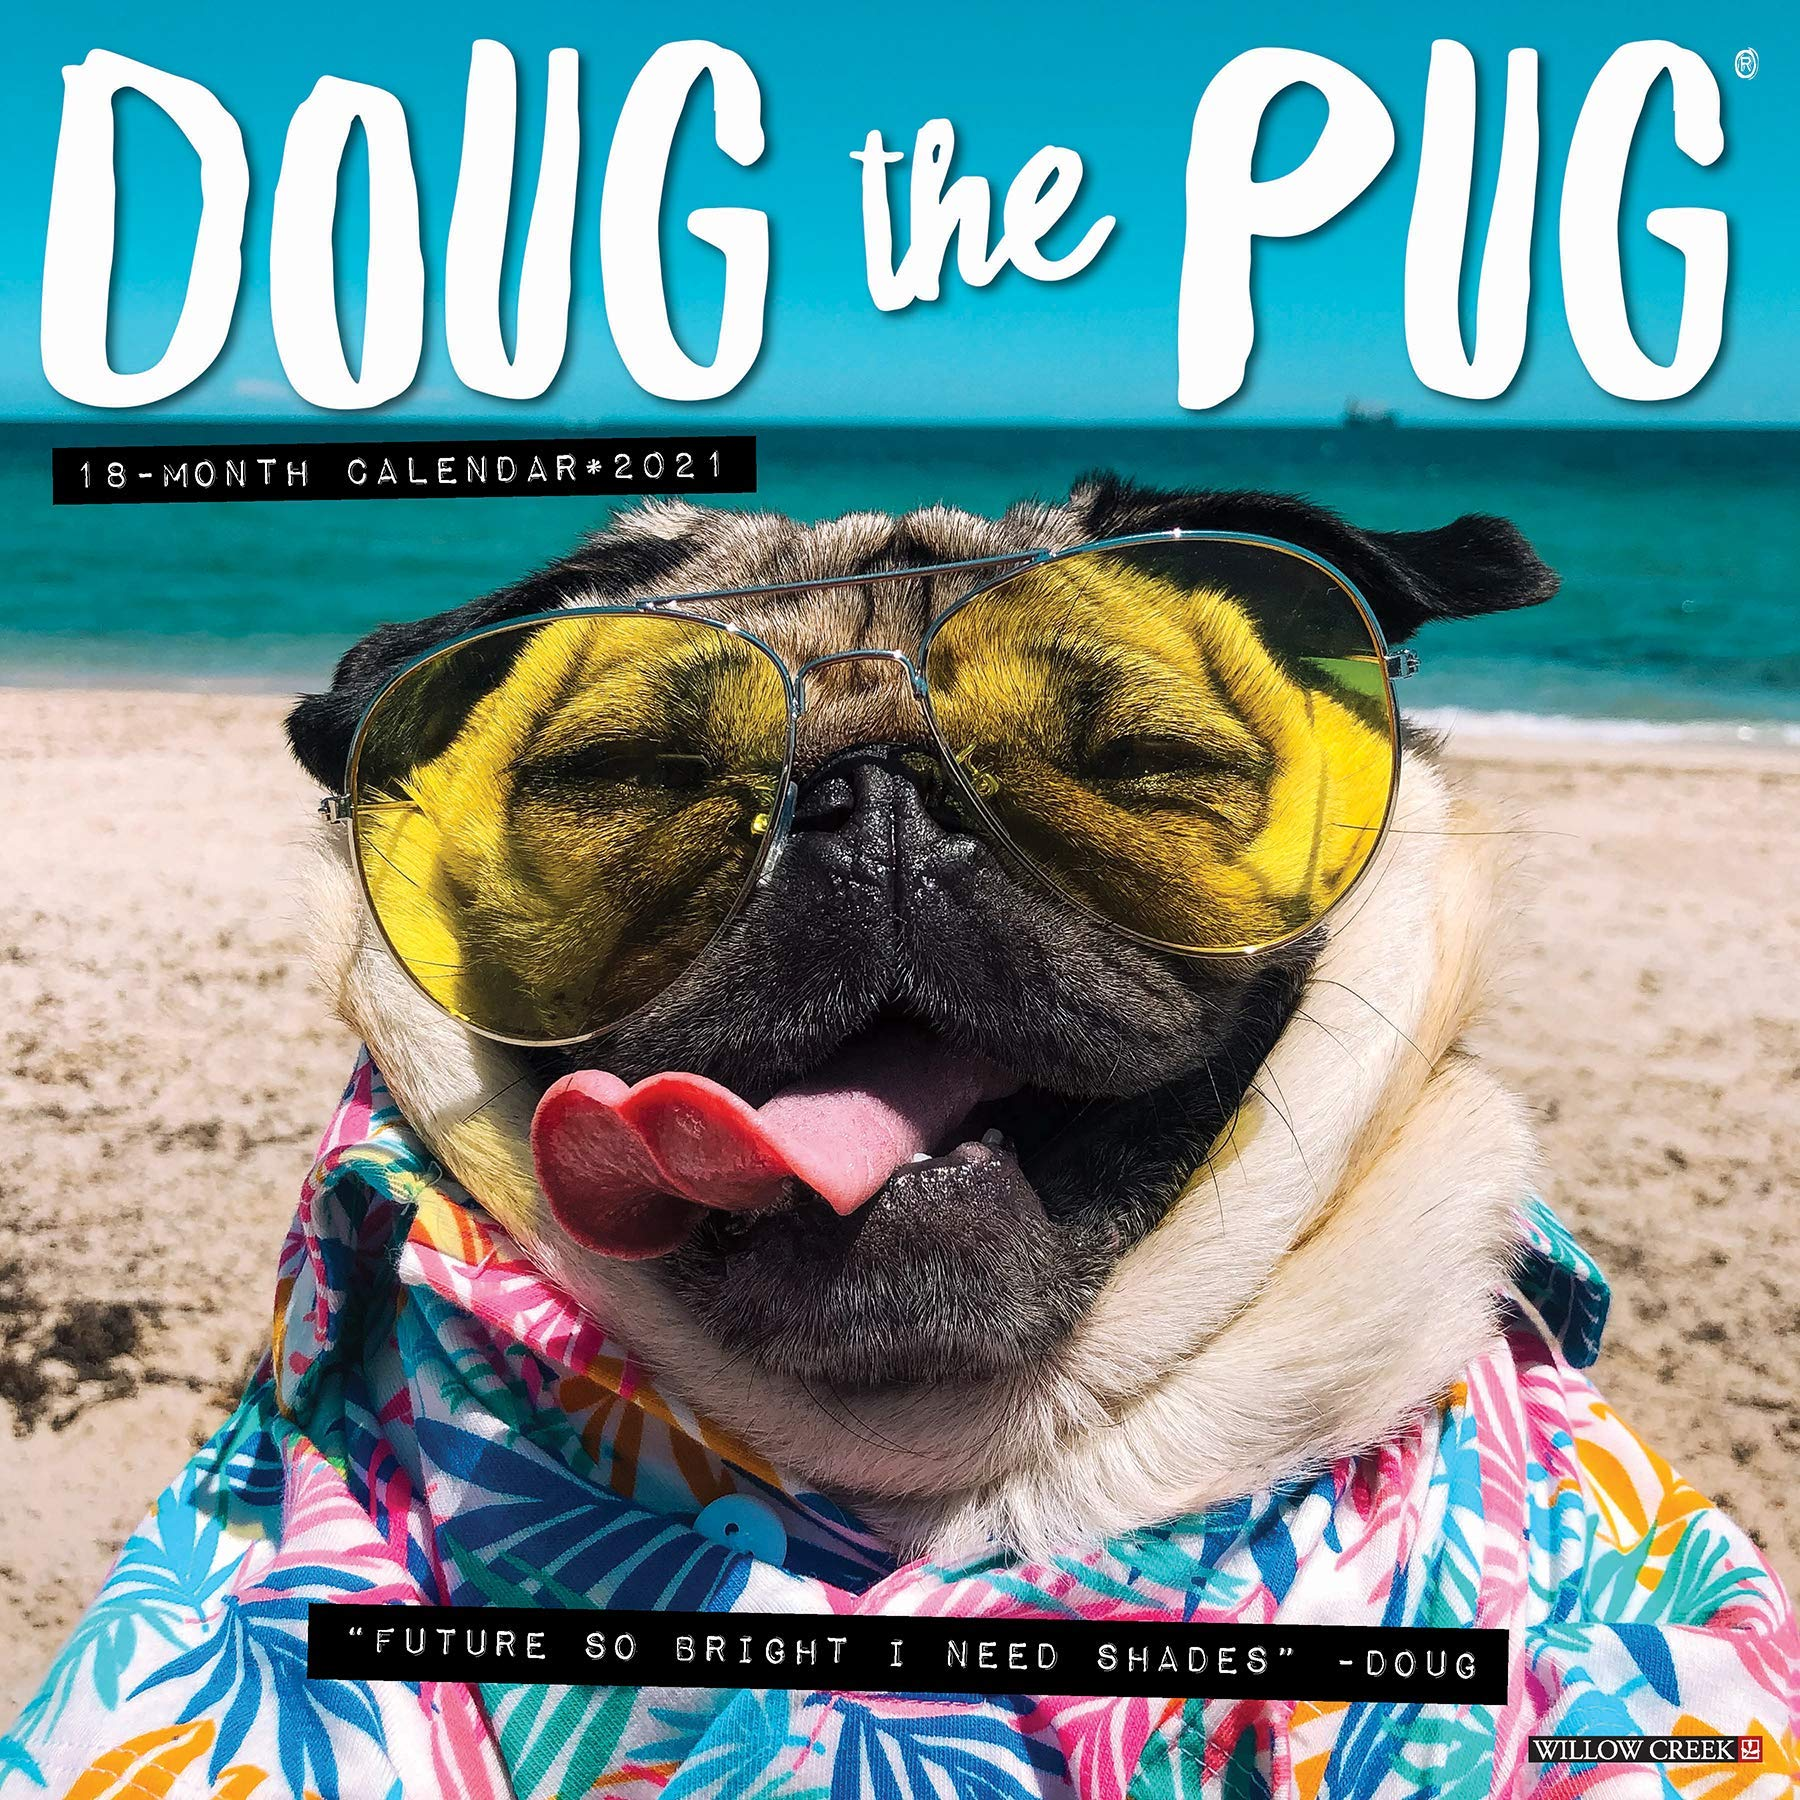 Doug the Pug 2021 Wall Calendar (Dog Breed Calendar): Mosier